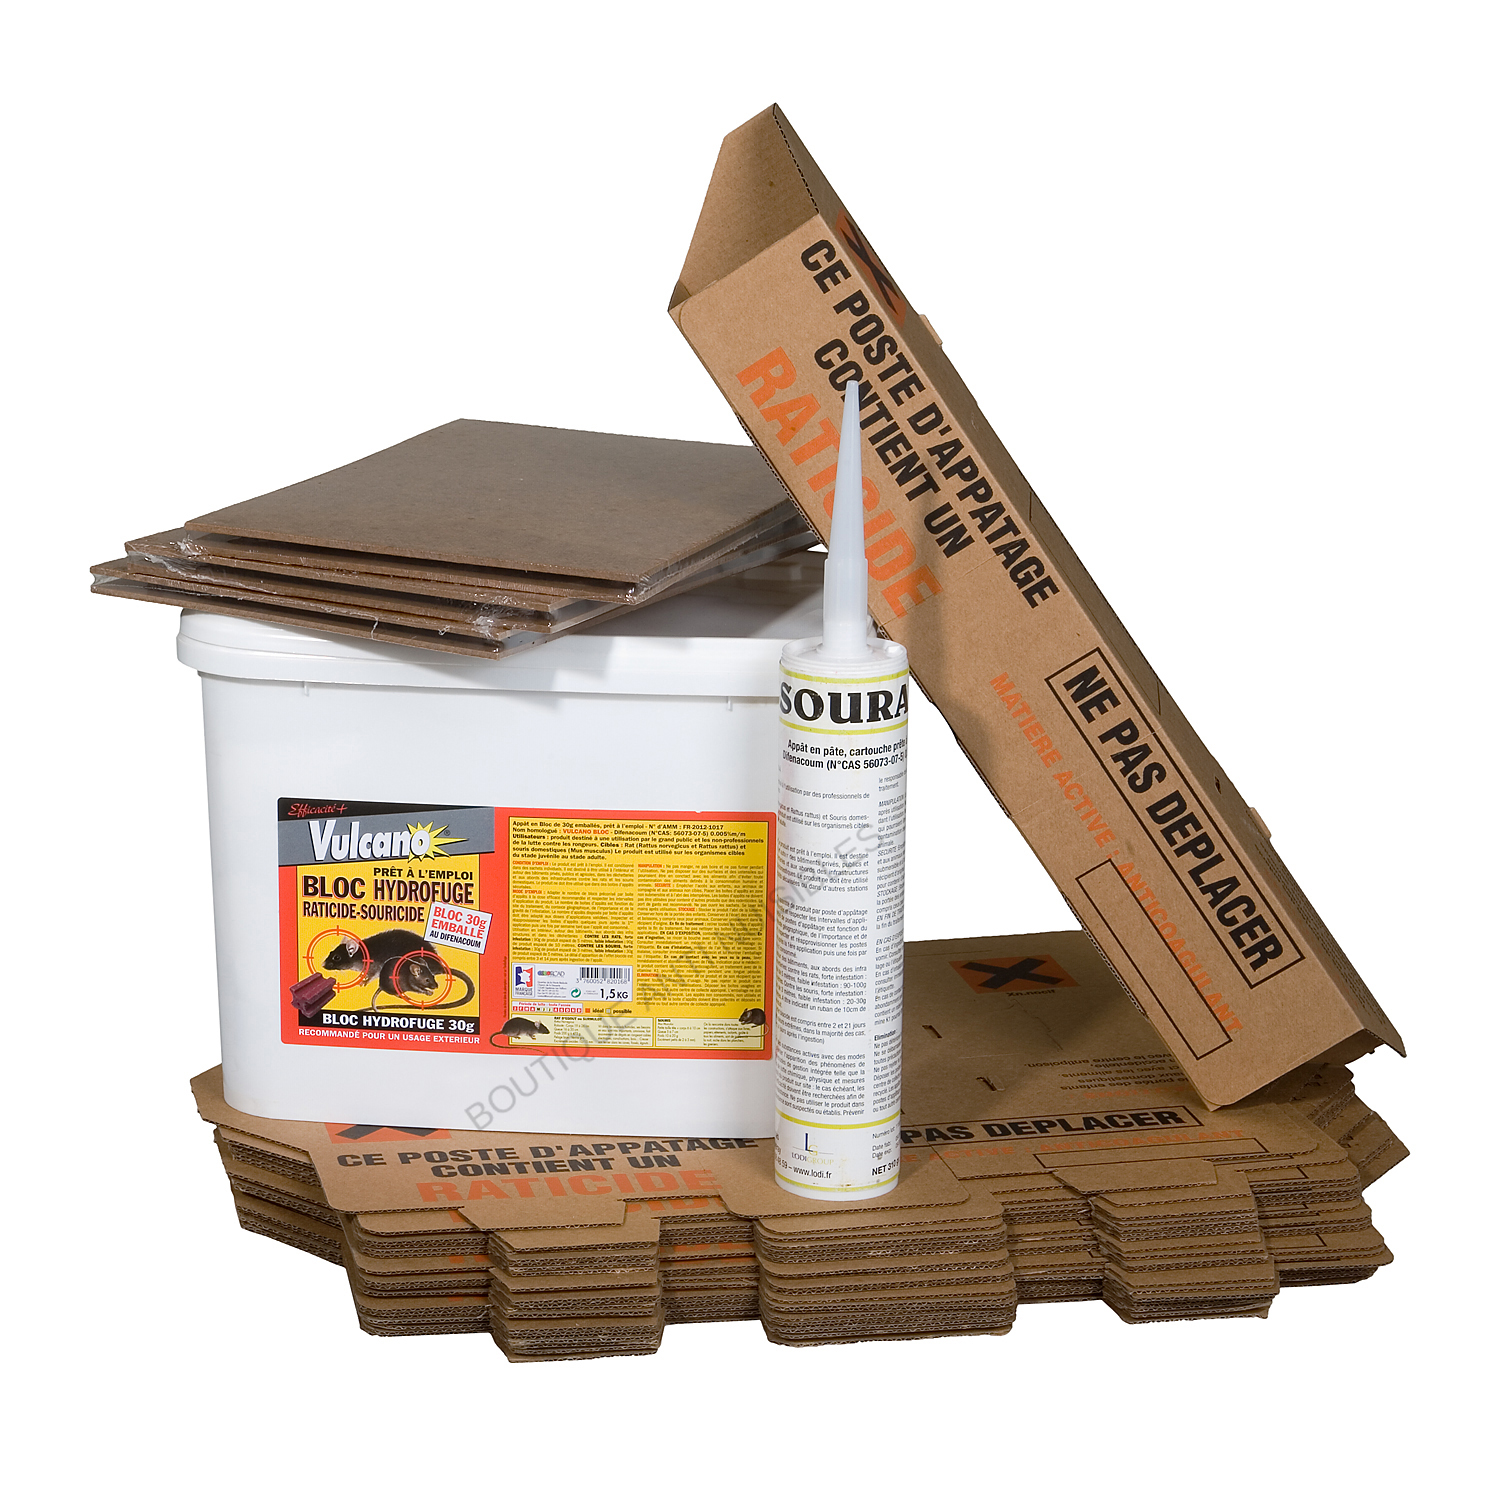 PACK ANTI RAT SCEAU BLOCS 1.5 KG + GEL SOURAXA + 6 PLAQUES DE GLUE